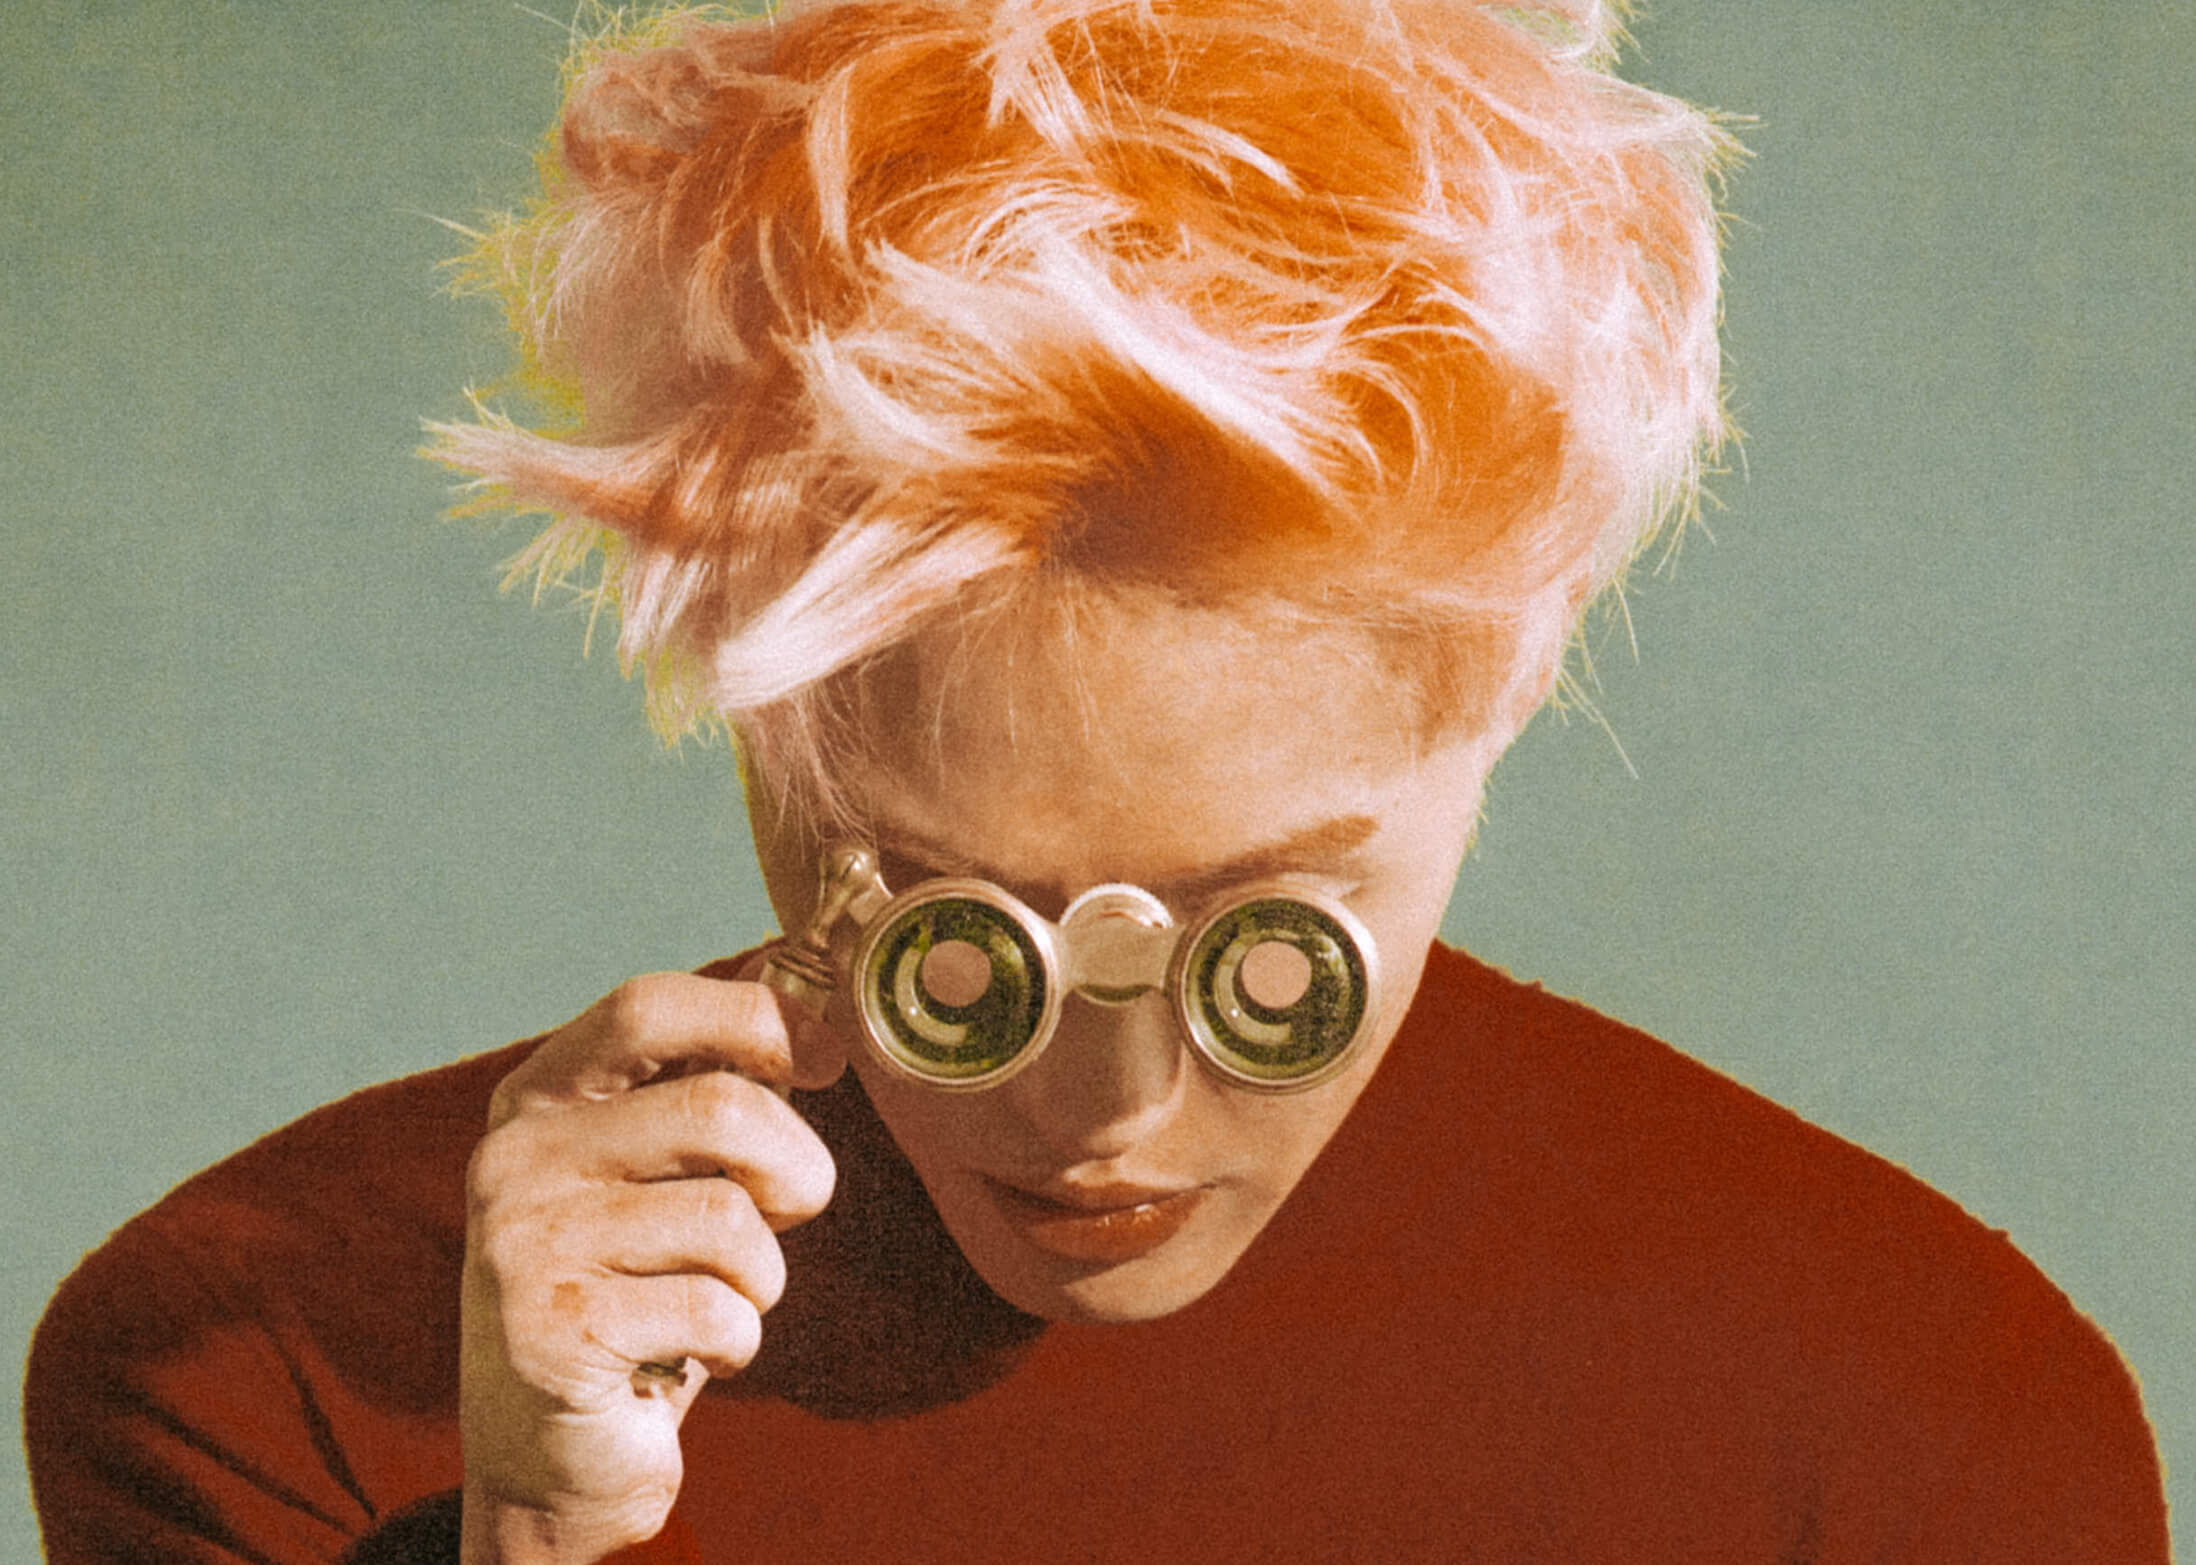 Zion.T Explains His Unique Style And How He Writes Songs